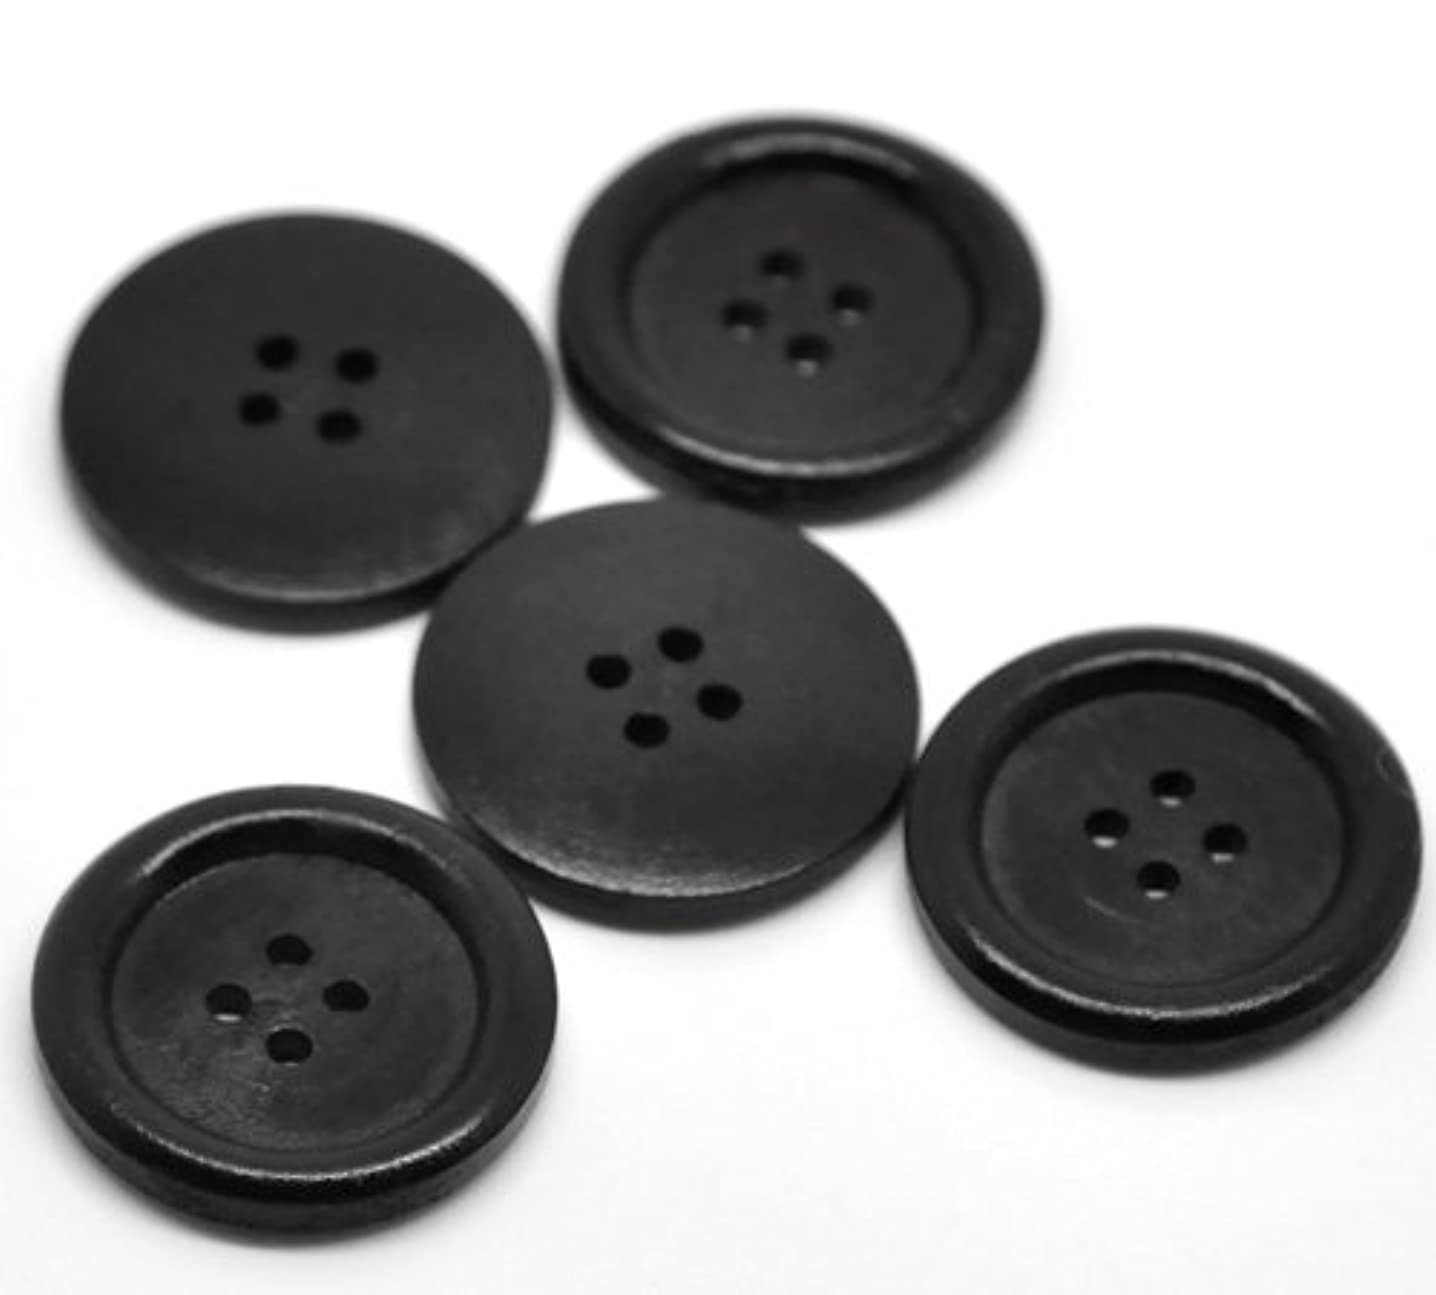 PEPPERLONELY Brand 30PC Black 4 Hole Scrapbooking Sewing Wood Buttons 30mm(1-1/6 Inch)